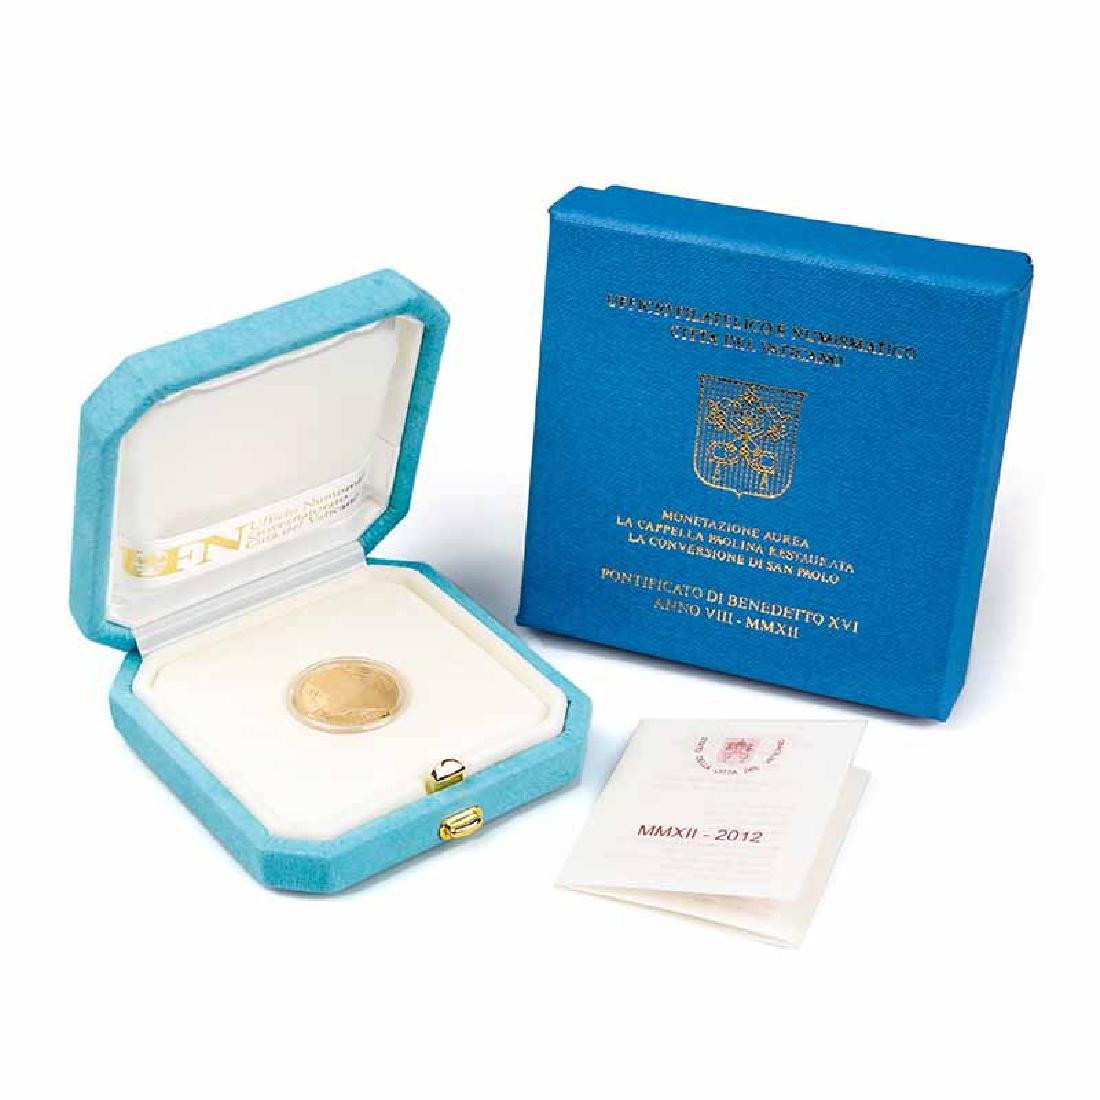 Vatican City 2012 20 Euro Gold Coin